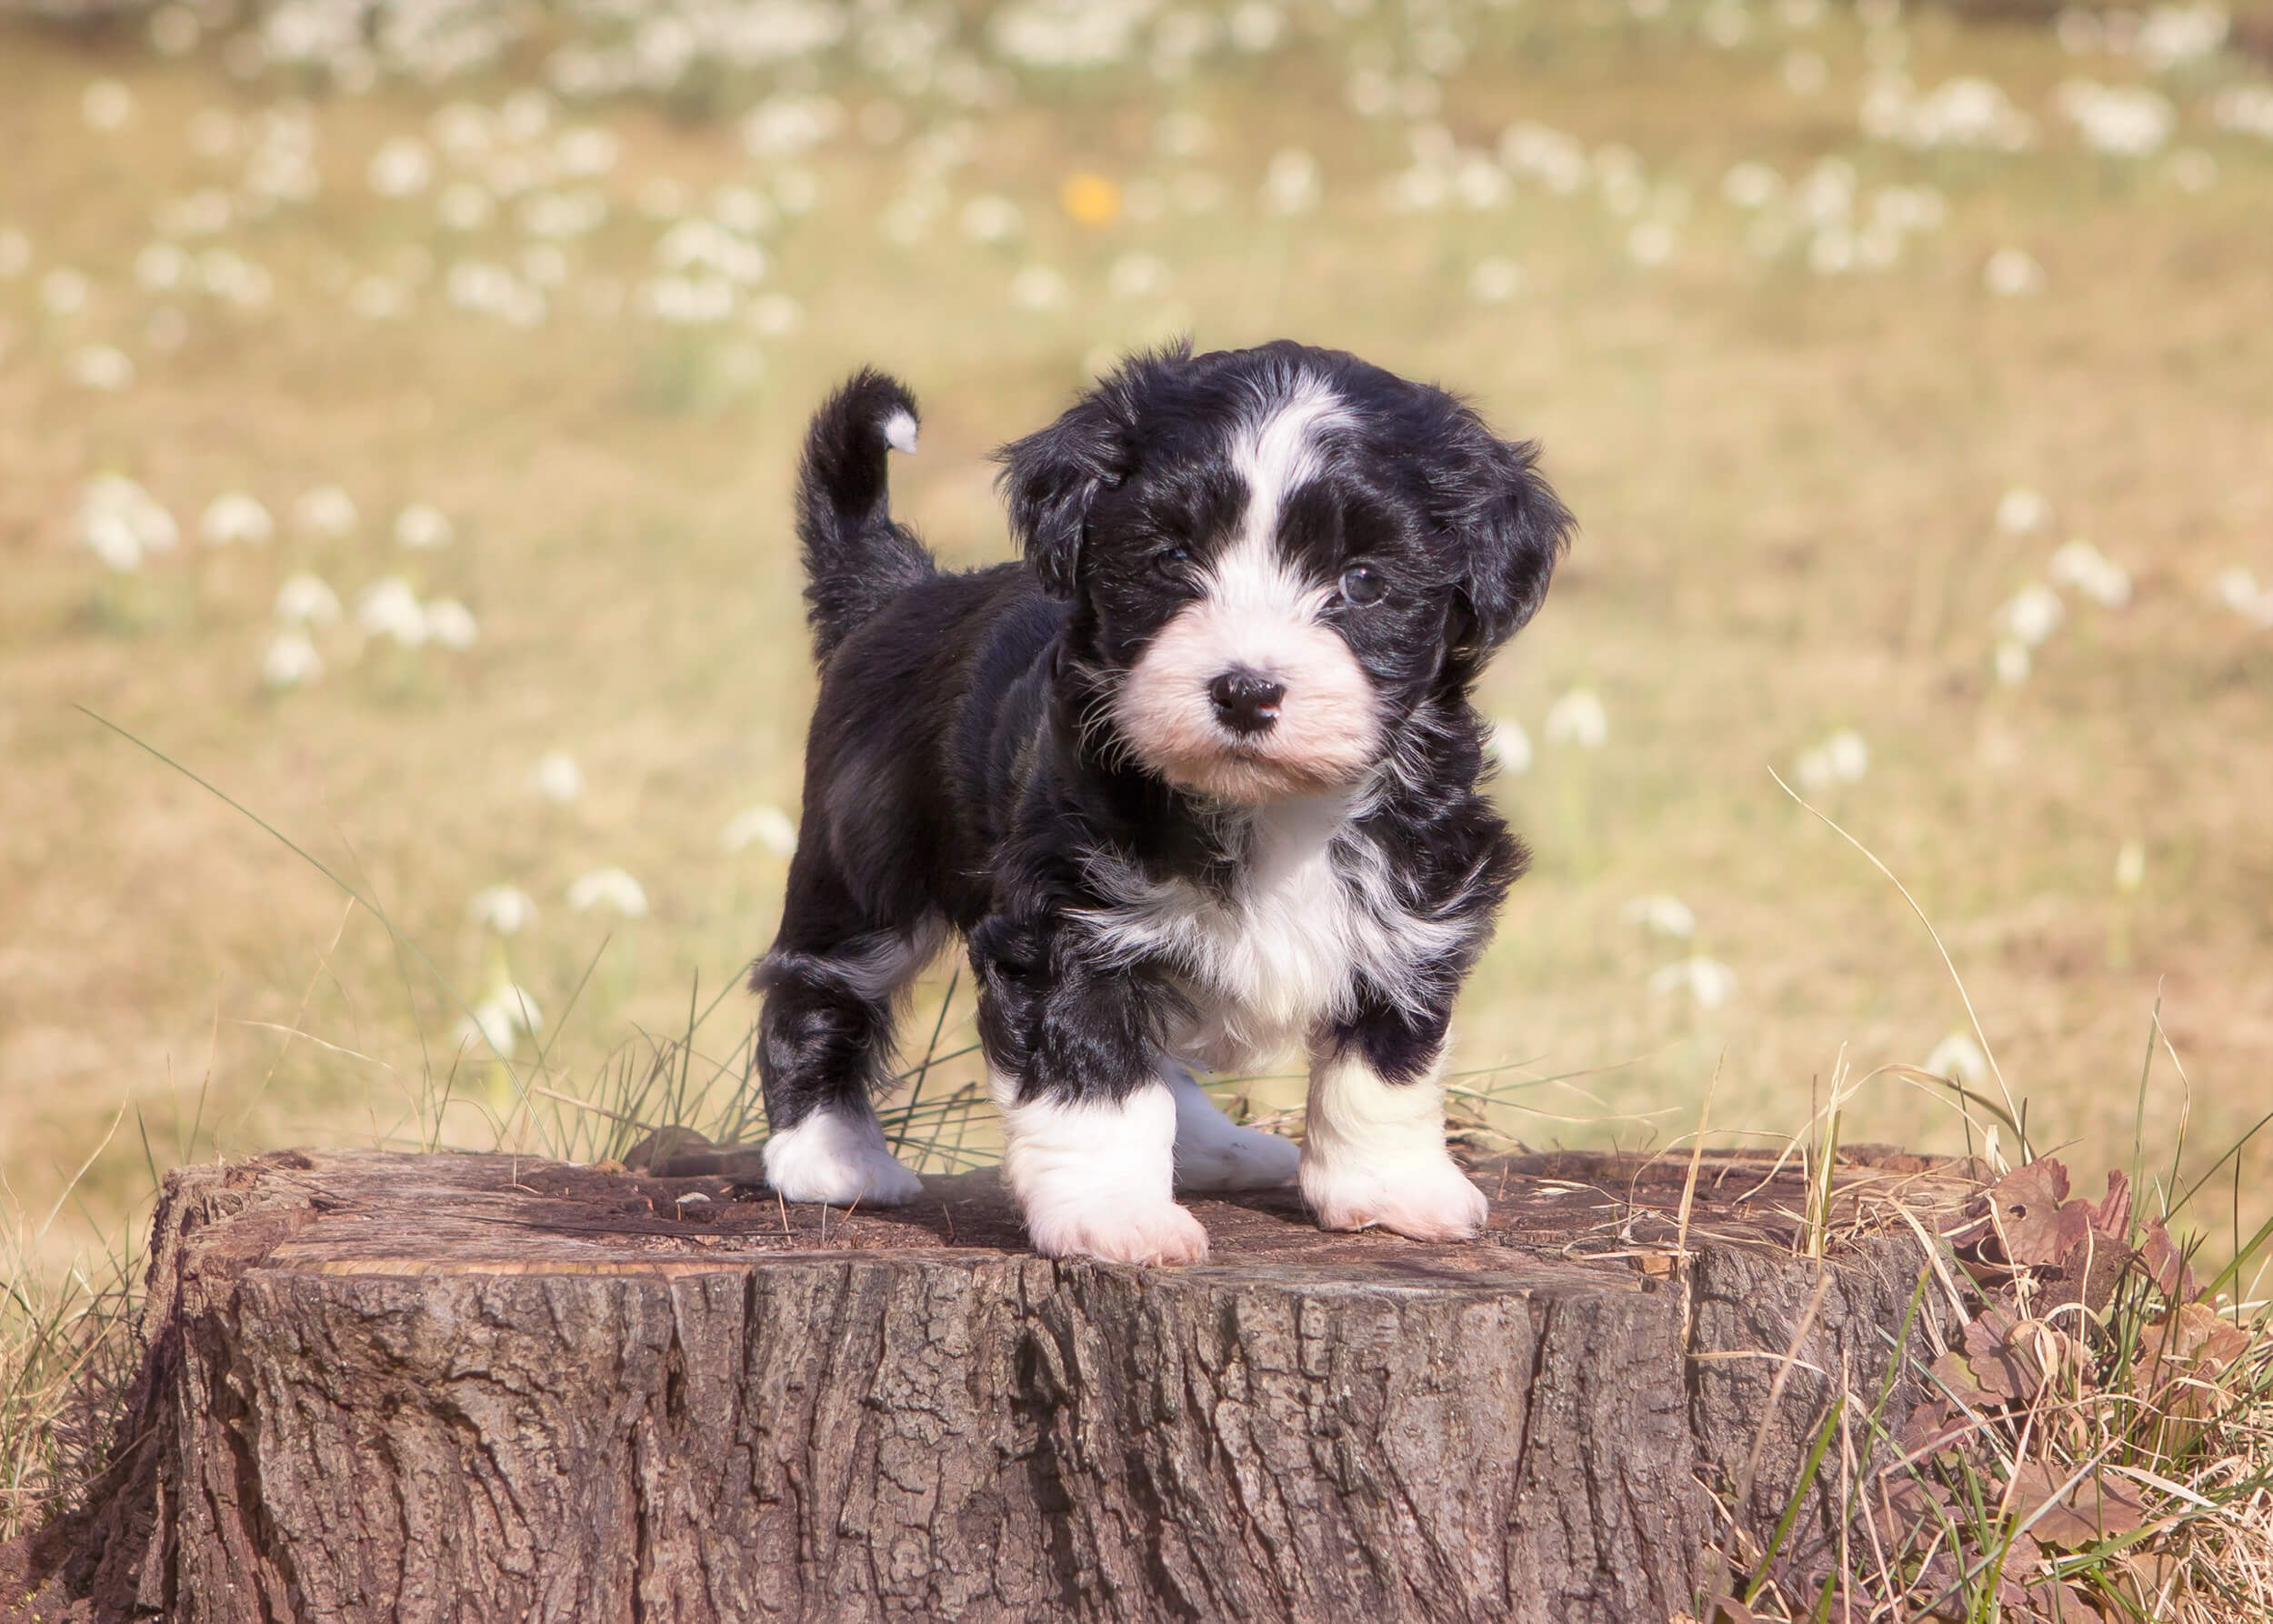 Hanka Ist Ihre Mutter The Bichon Frise And Yorkshire Terrier Mix Is An Ideal Pet For Active Owners Havaneser Steckbrief C In 2020 Terrier Mix Havanese Havanese Dogs